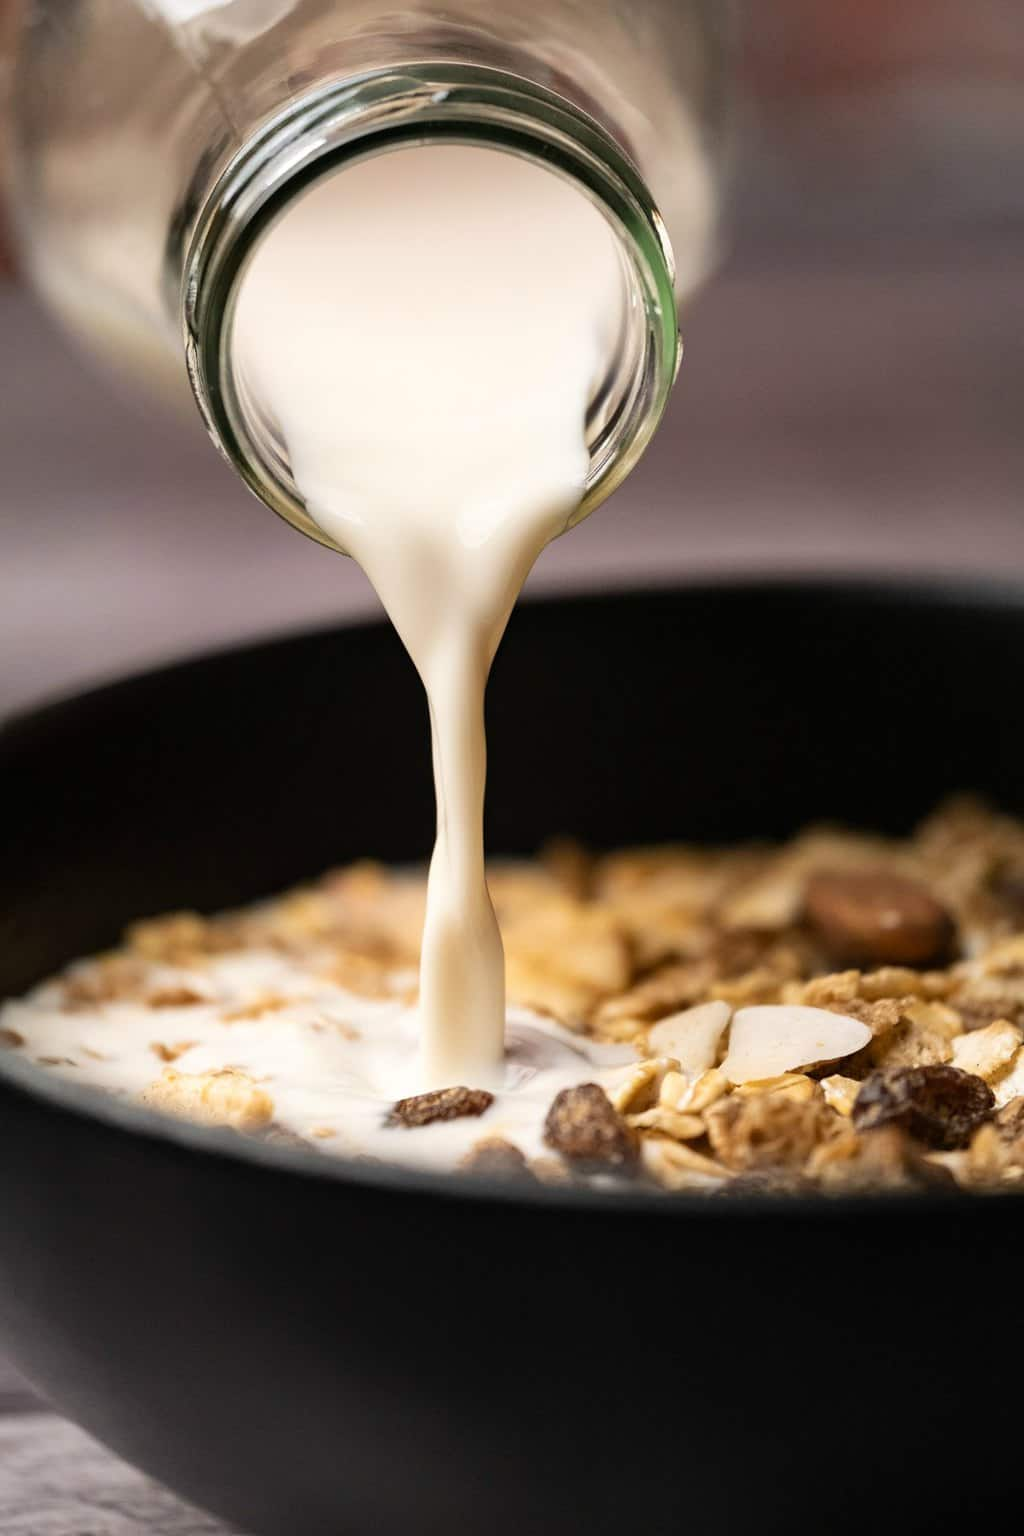 Almond milk pouring over cereal in a black bowl.